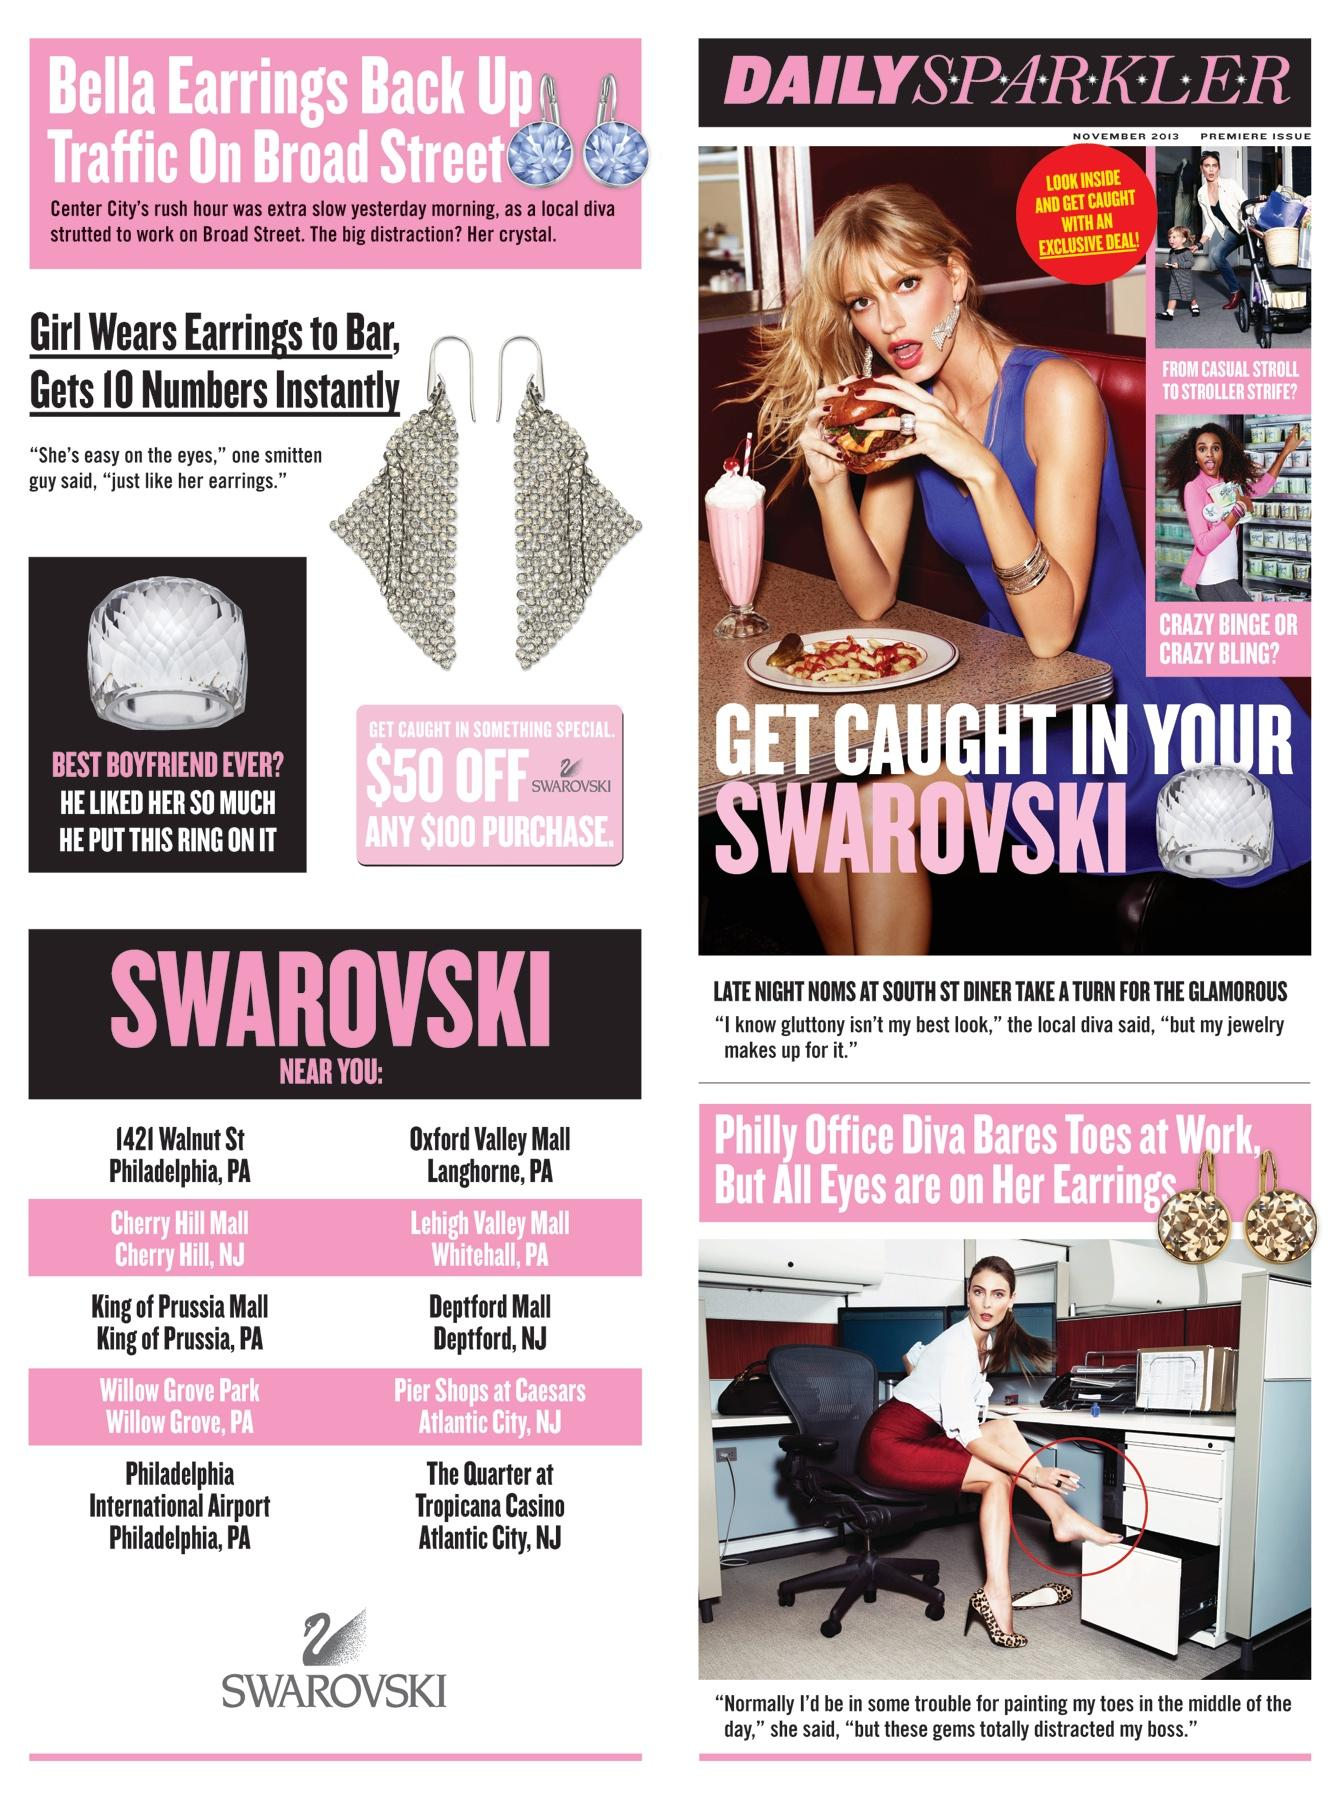 Swarovski Print Ad -  Get caught in your Swarovski, Daily Sparkler, 1